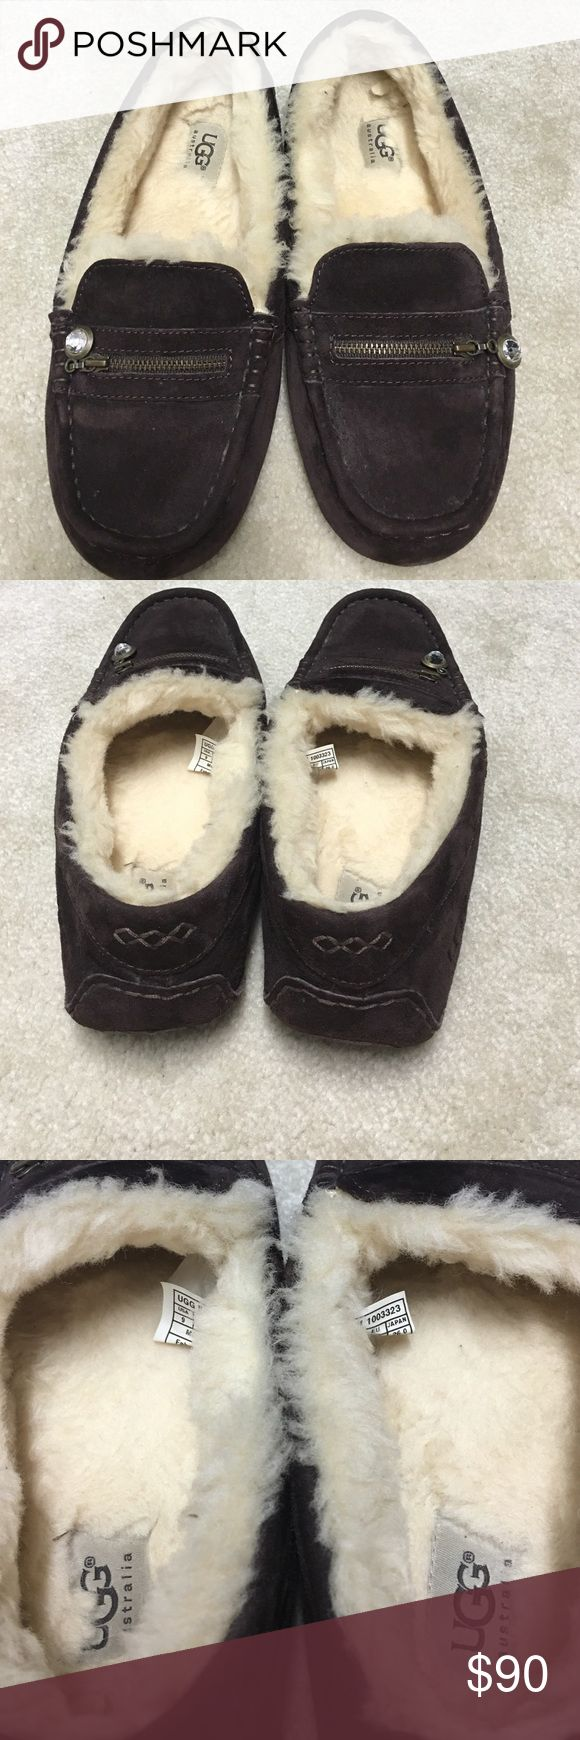 Women's Ugg shoes The Women's Ugg shoes are brand new and never worn. Perfect condition. They are slip on Uggs. UGG Shoes